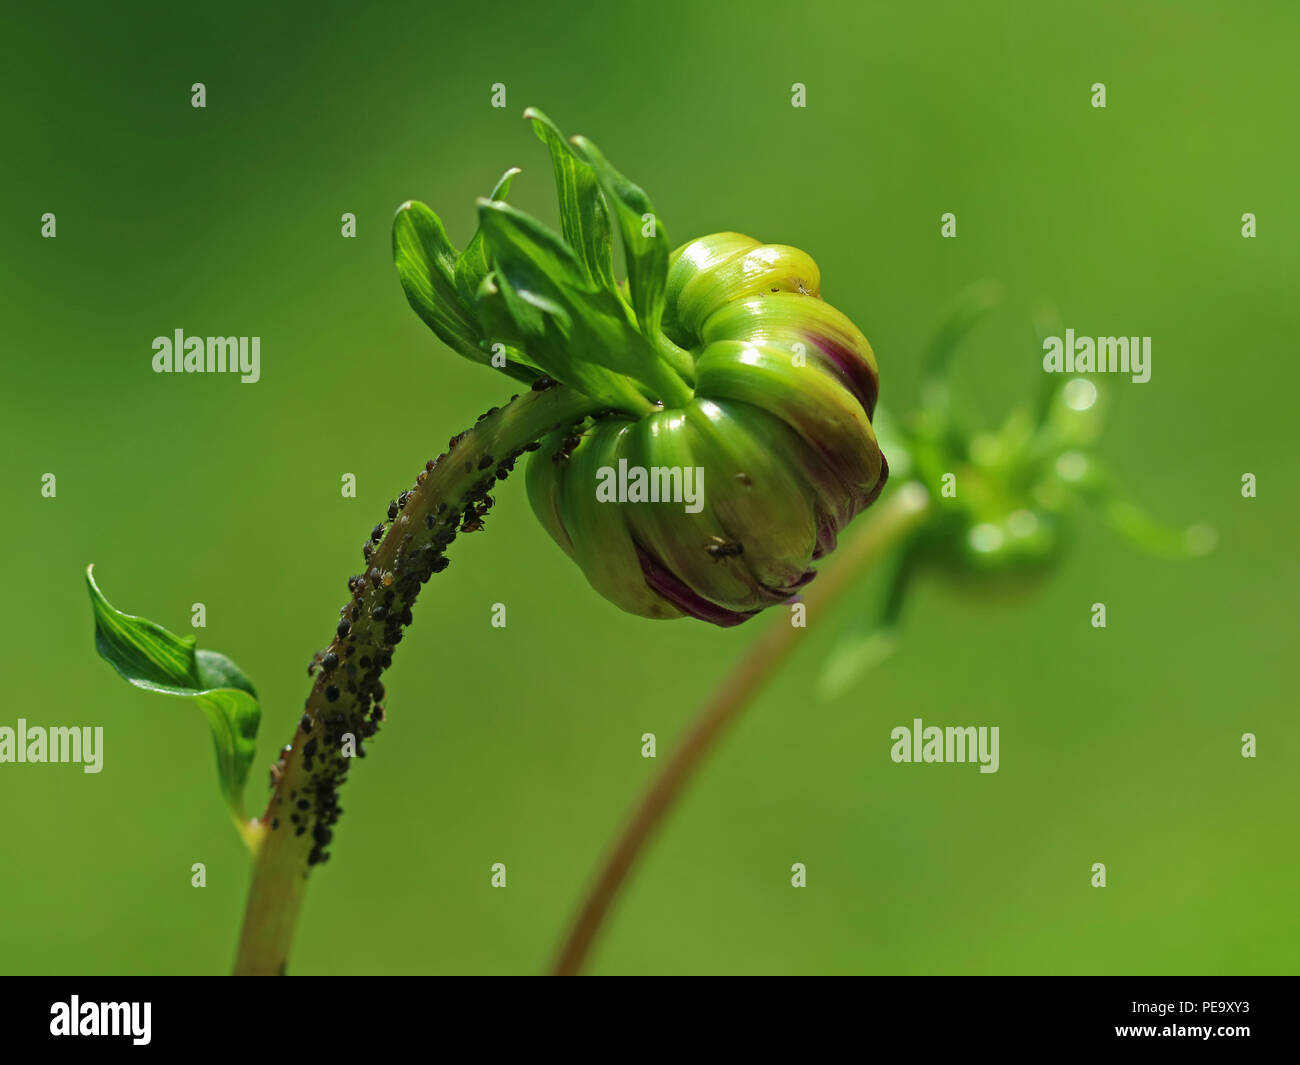 dahlia flower with pests in garden on green background - Stock Image